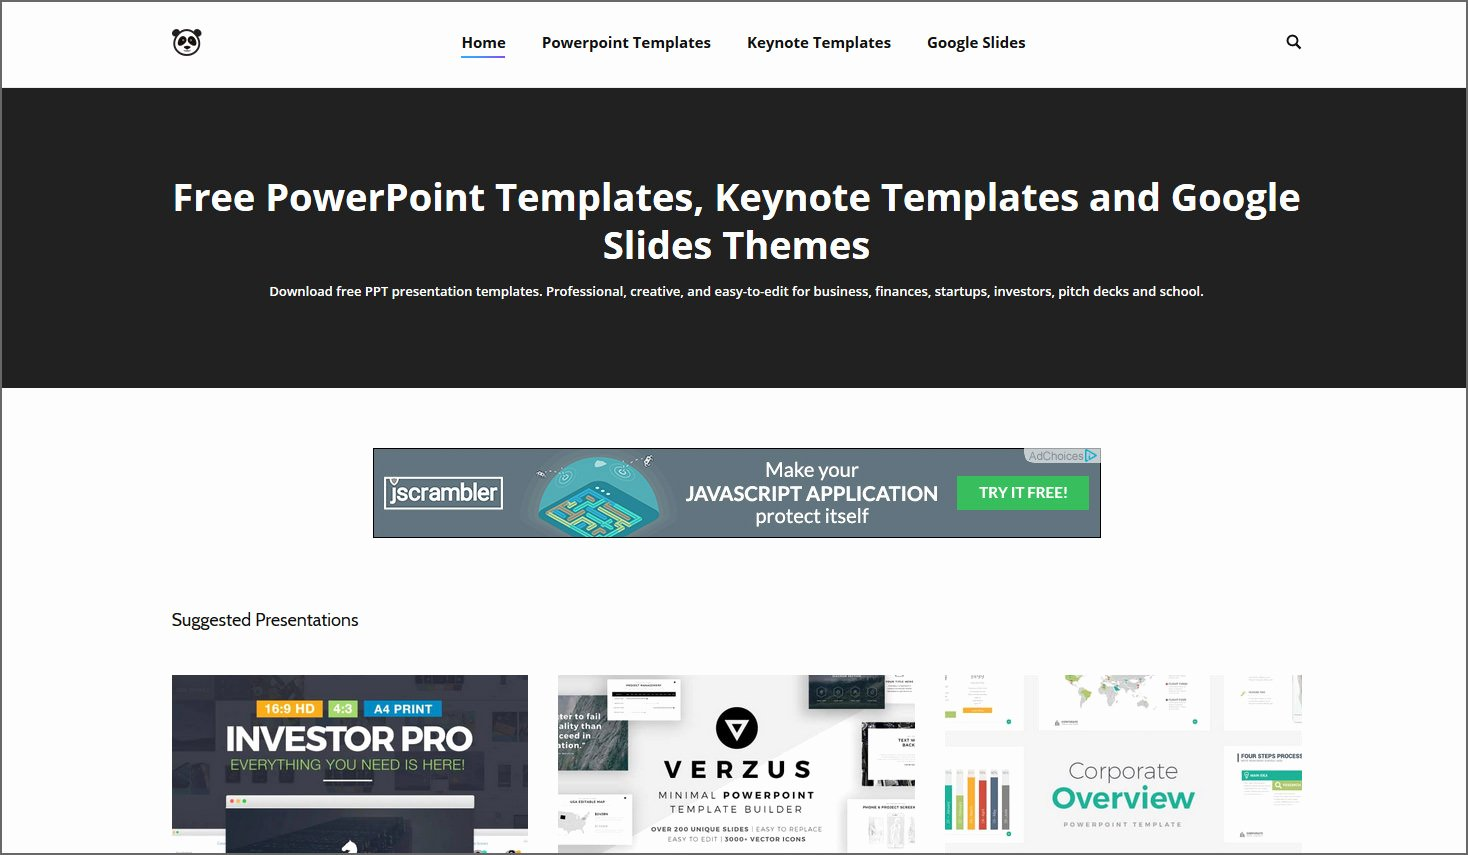 4 Sites with Free Beautiful Powerpoint Templates Keynotes